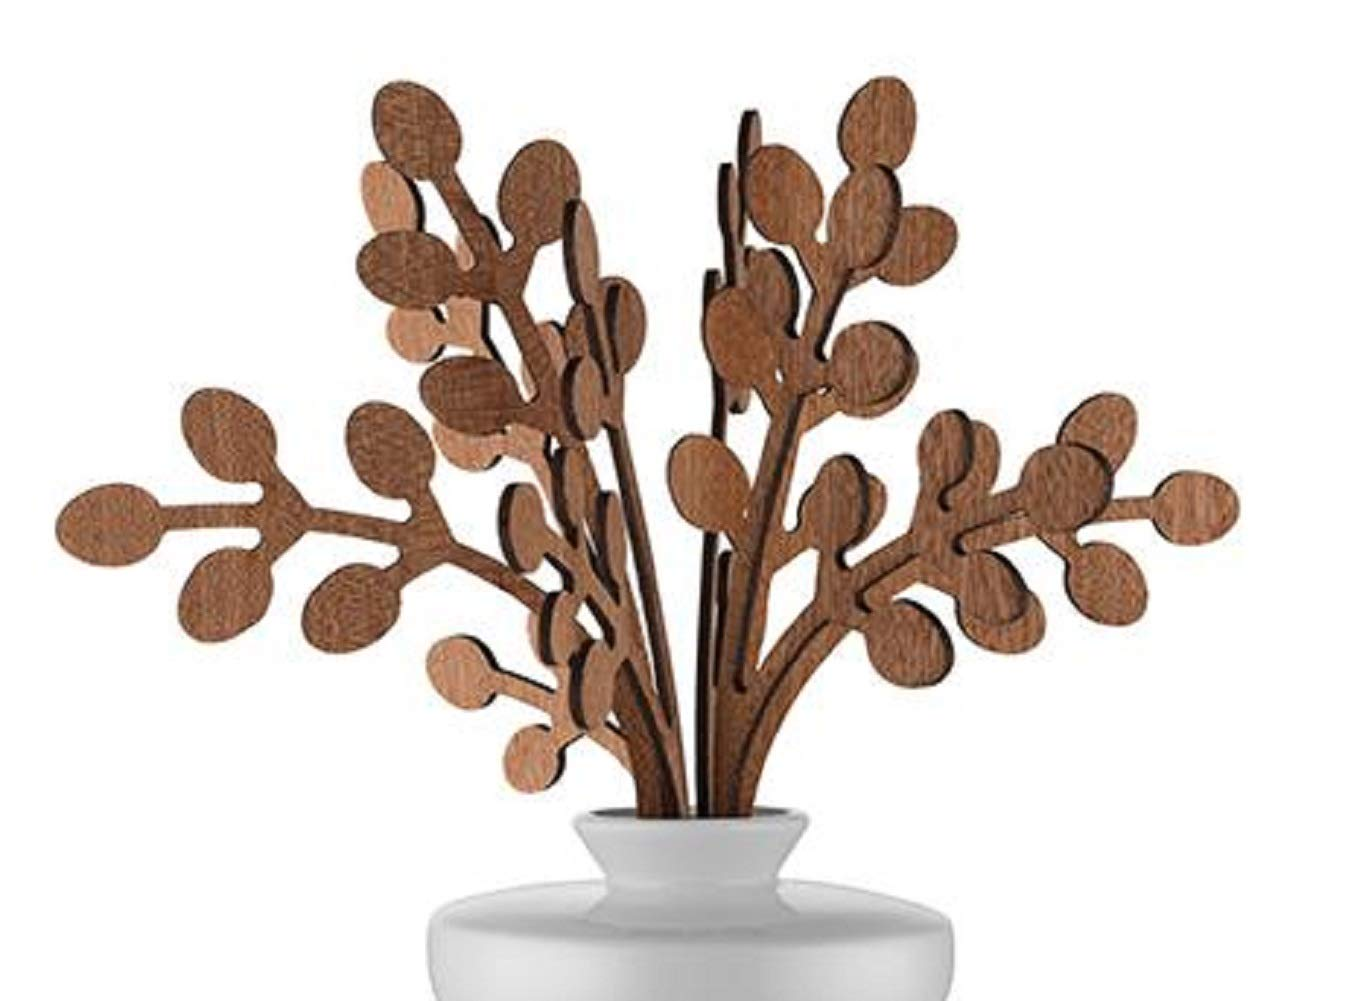 Alessi The Five Seasons Brrr Replacement Diffuser Leaves, Mahogany Wood, by Marcel Wanders